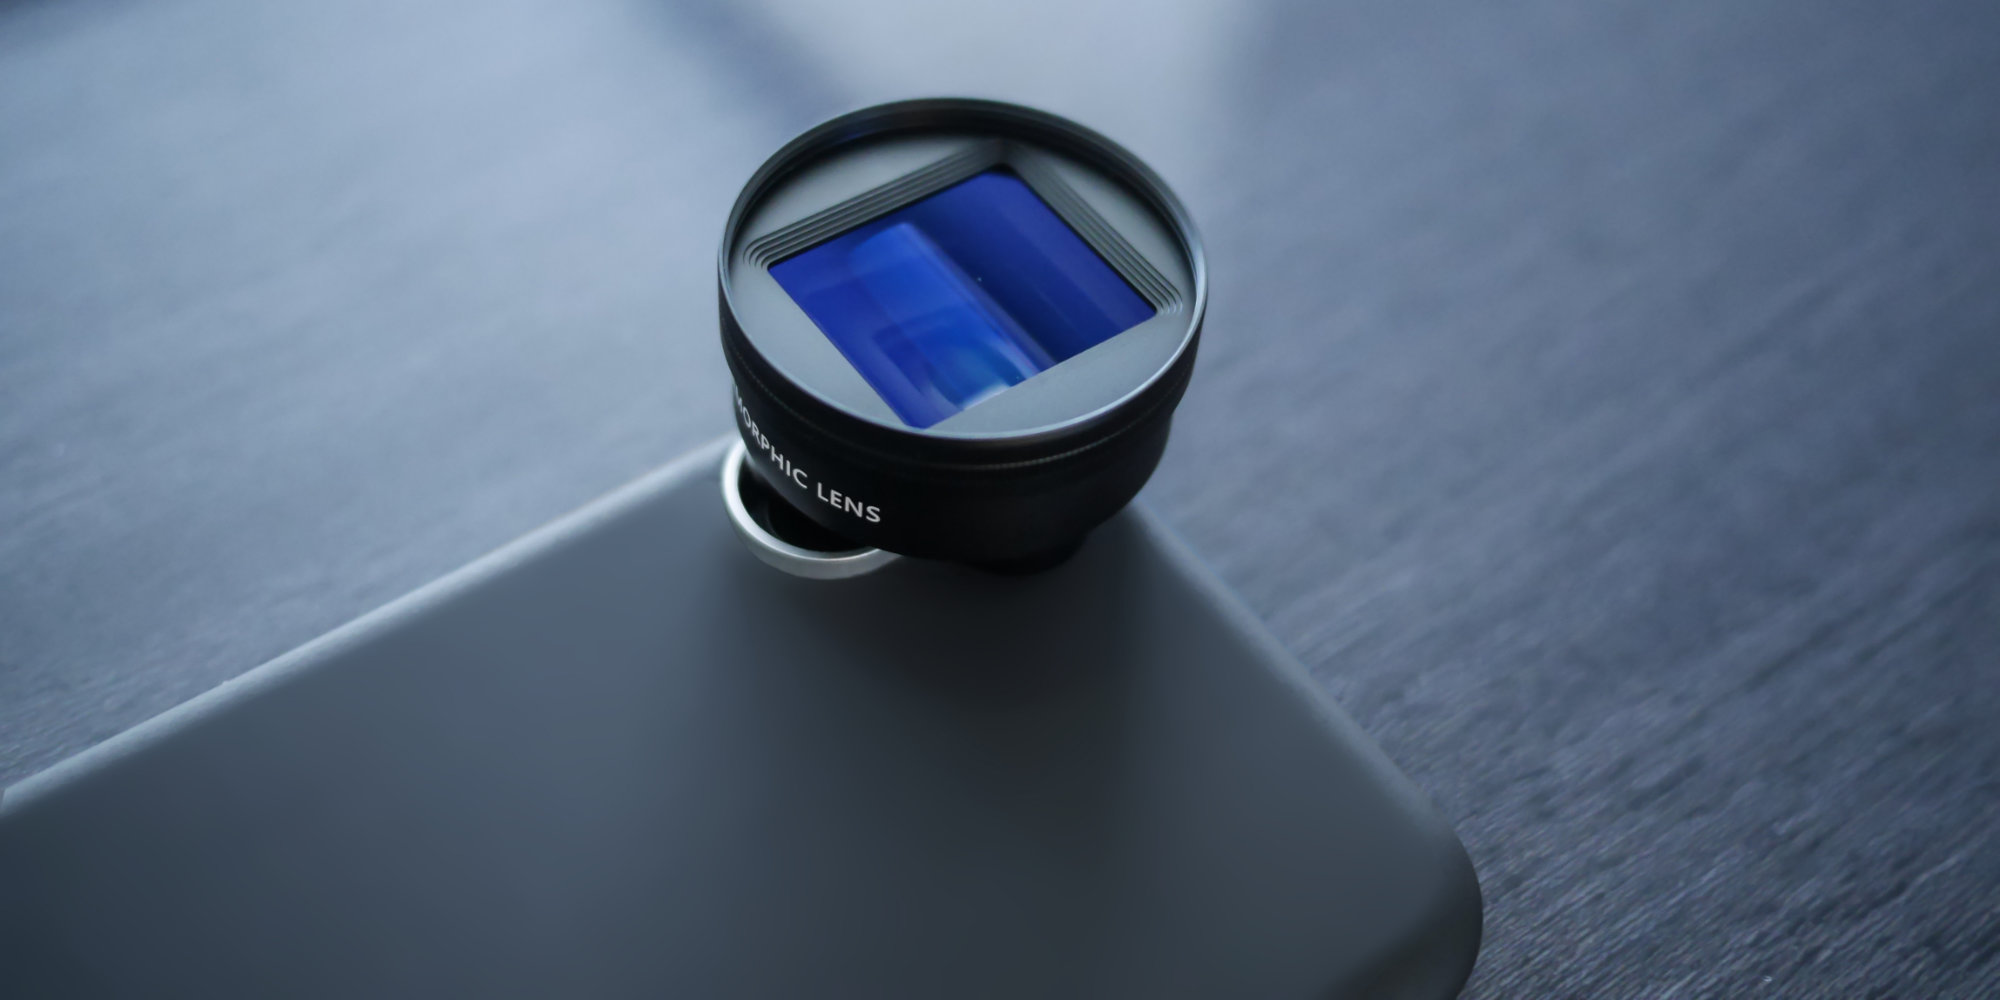 SANDMARC's New Anamorphic iPhone Lens Delivers Ultrawide FoV, Lens Flare, More